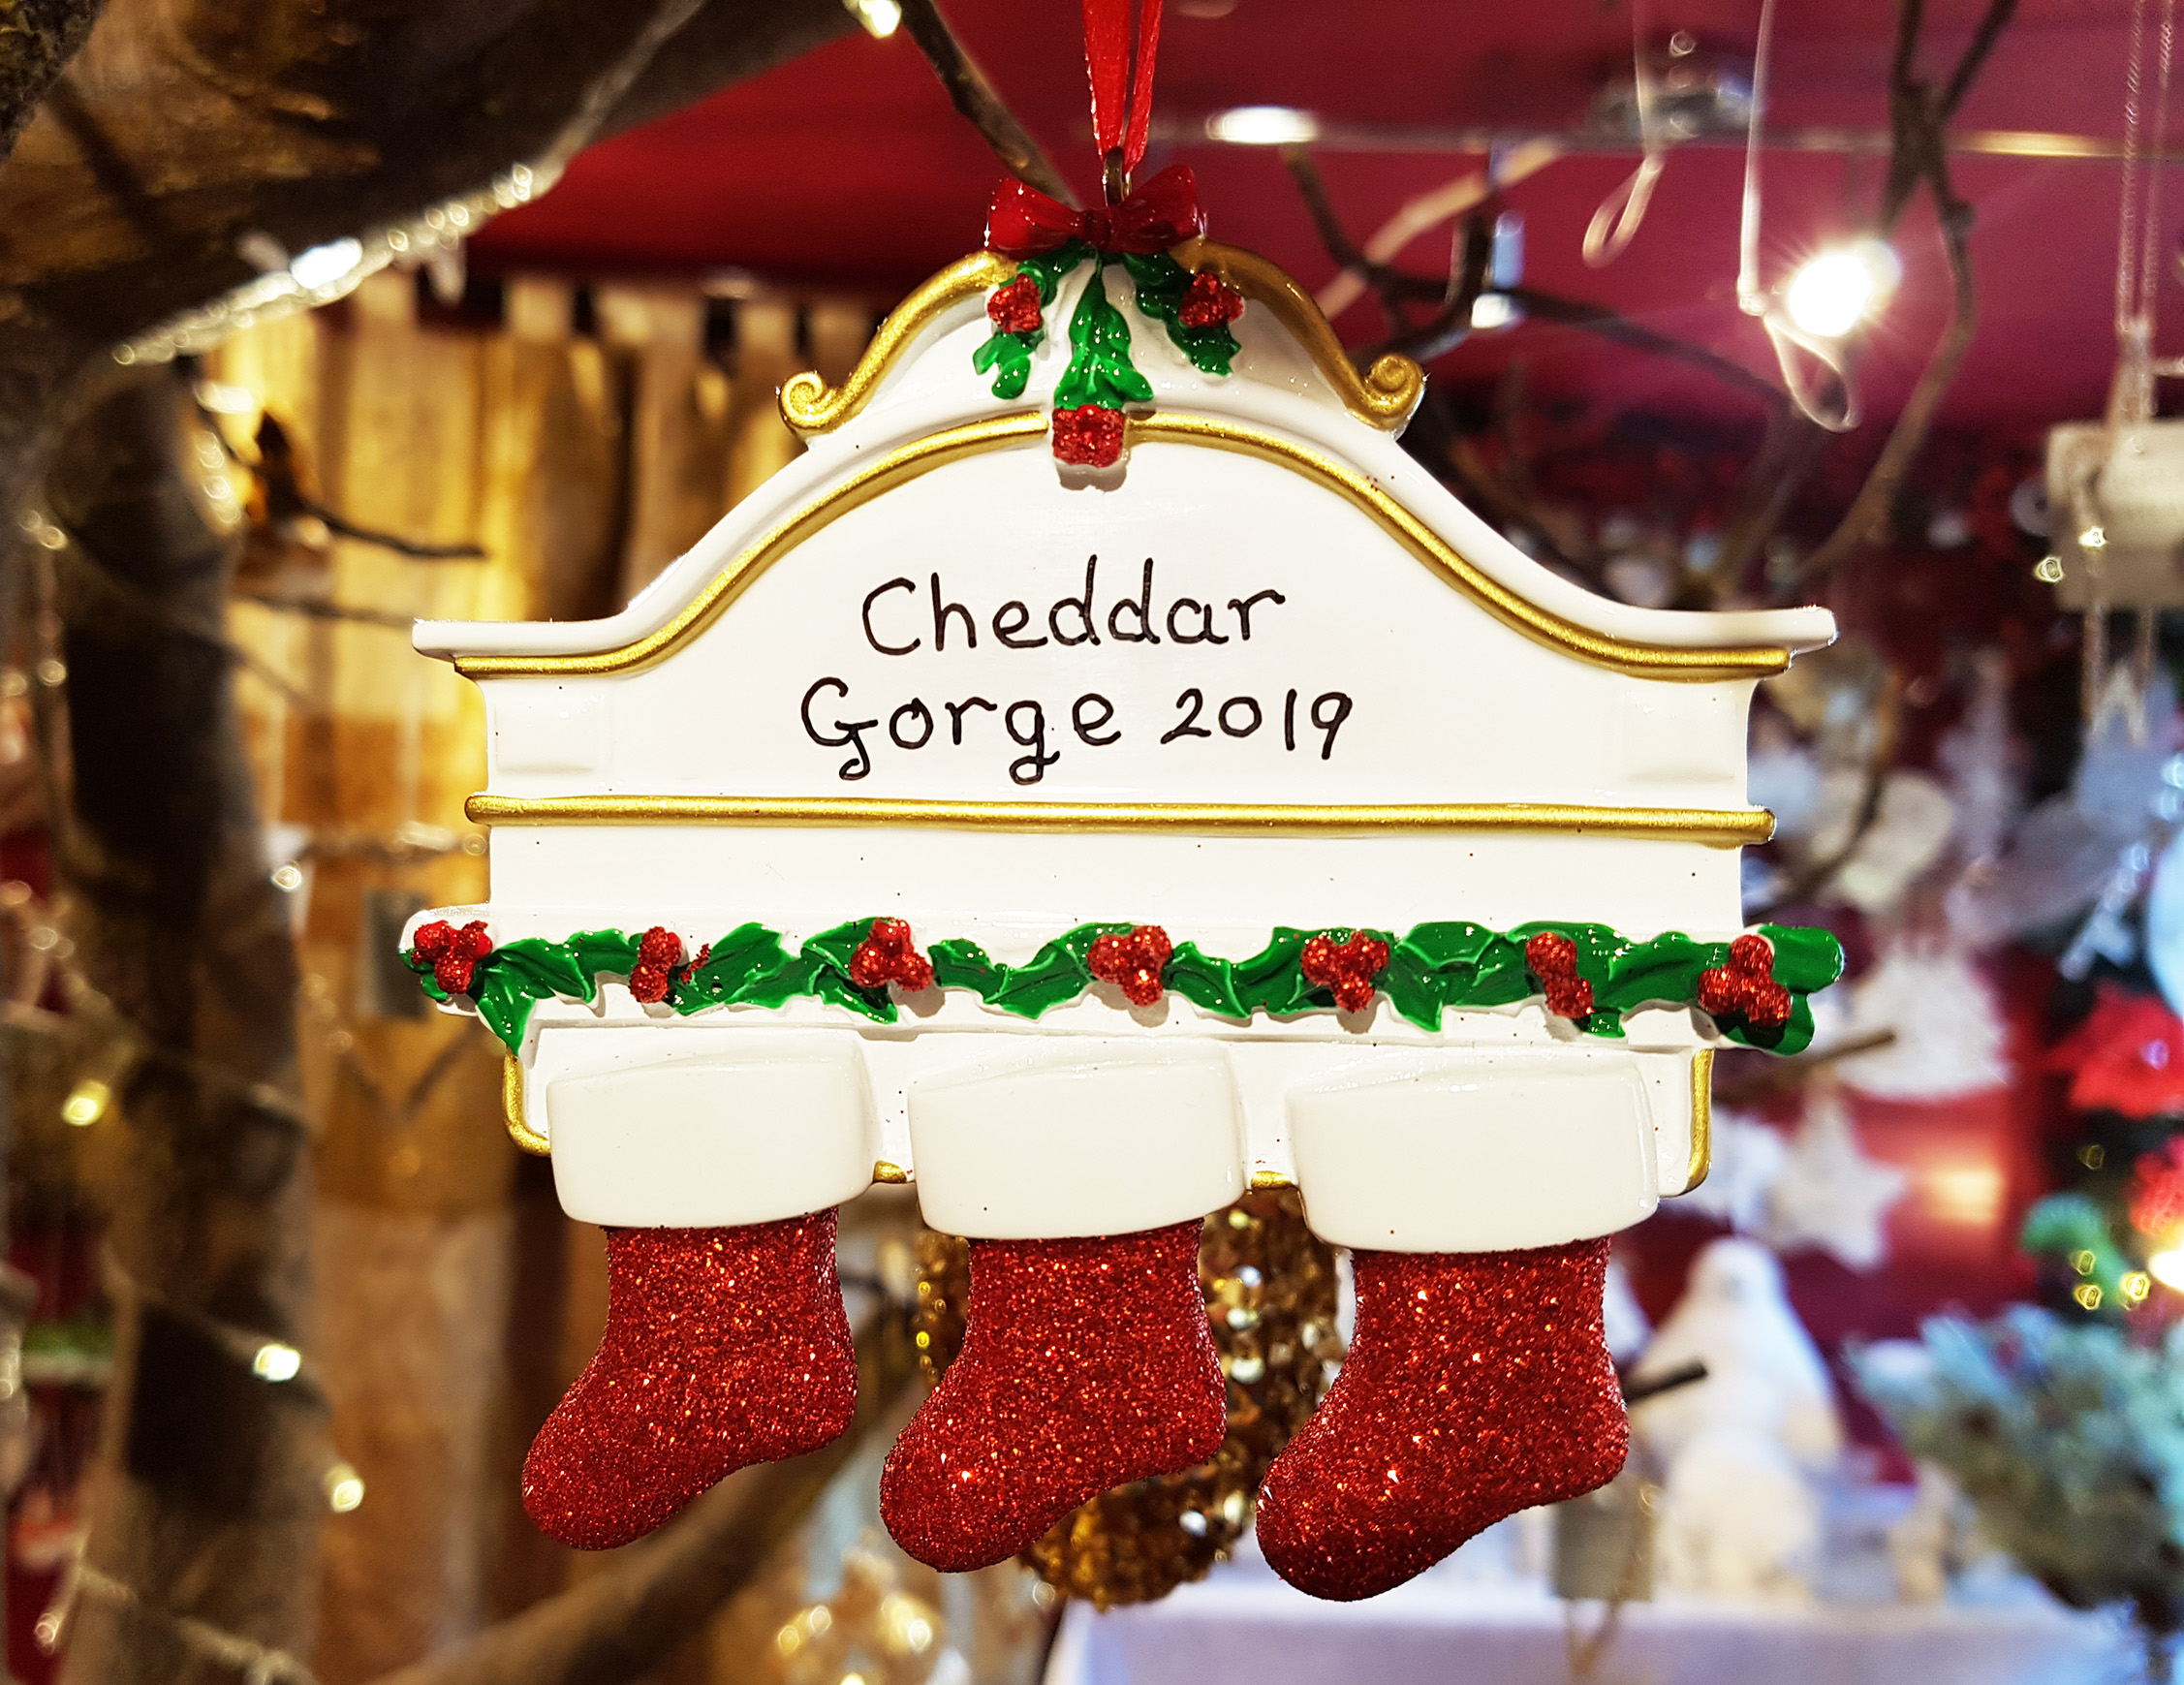 Cheddar Gorge White Mantle 3 Stockings Hanging Decoration 2019